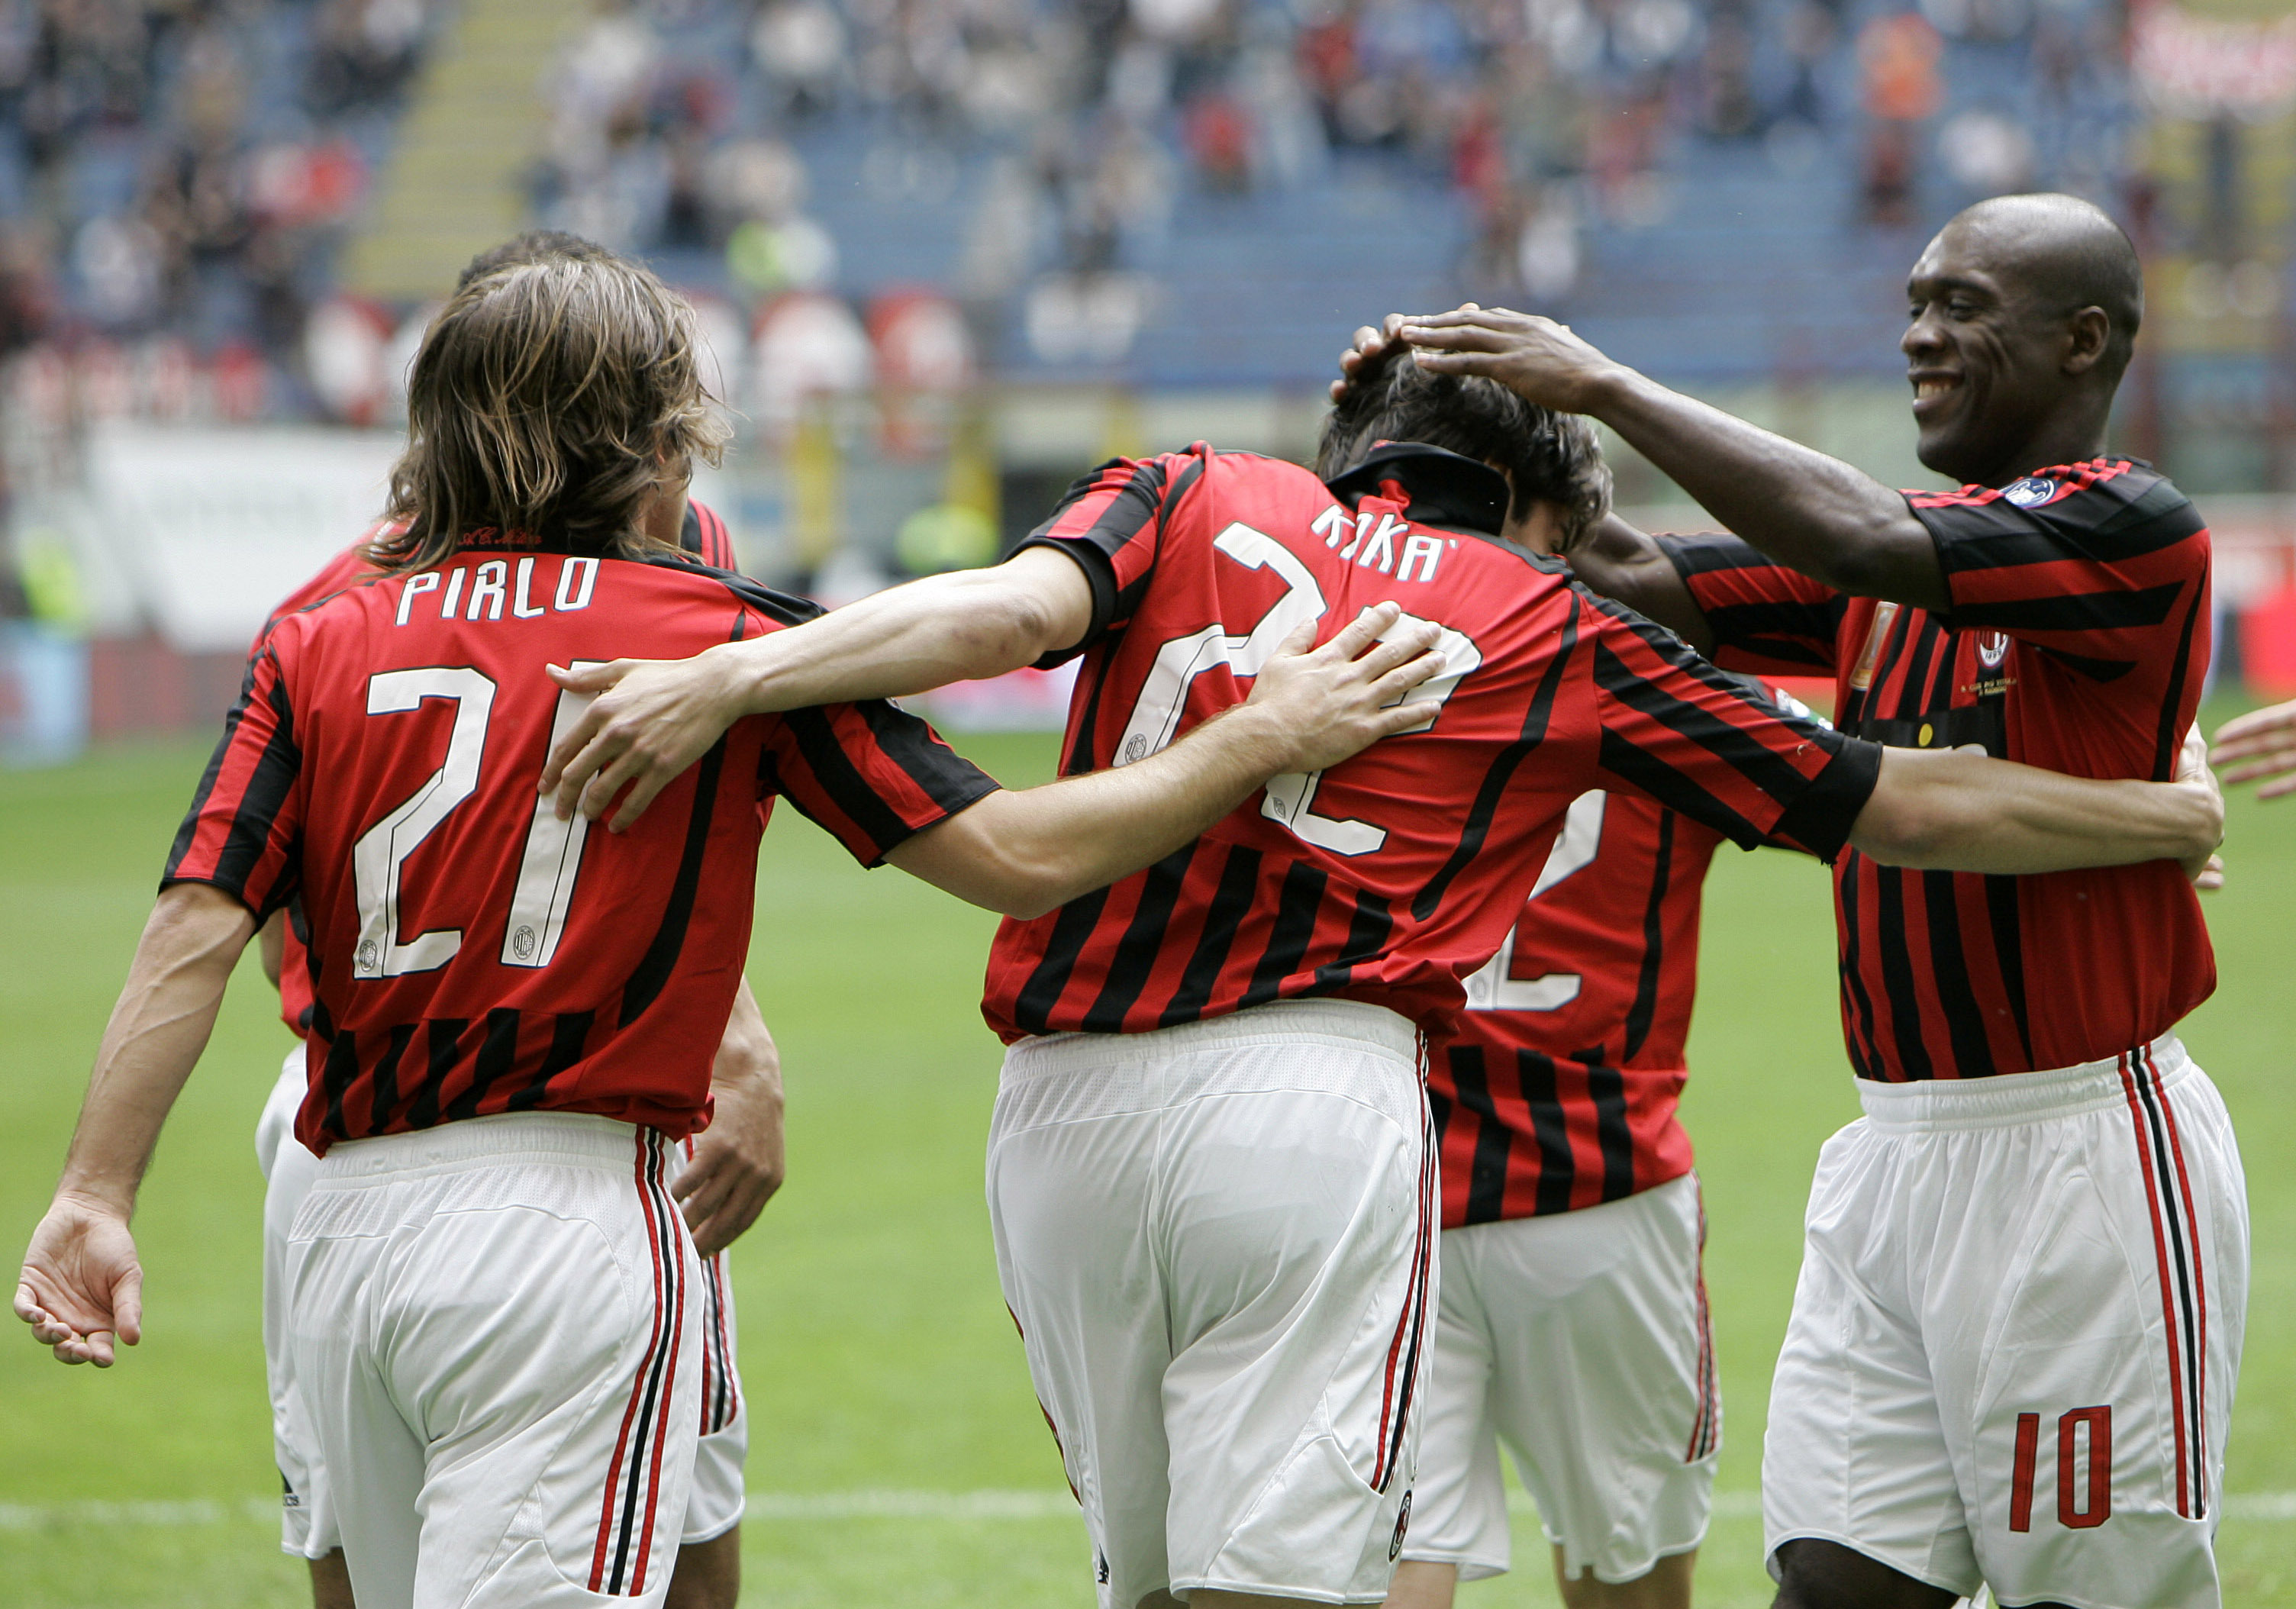 Pirlo, Seedorf and Kaka- not a bad midfield! Image: PA Images